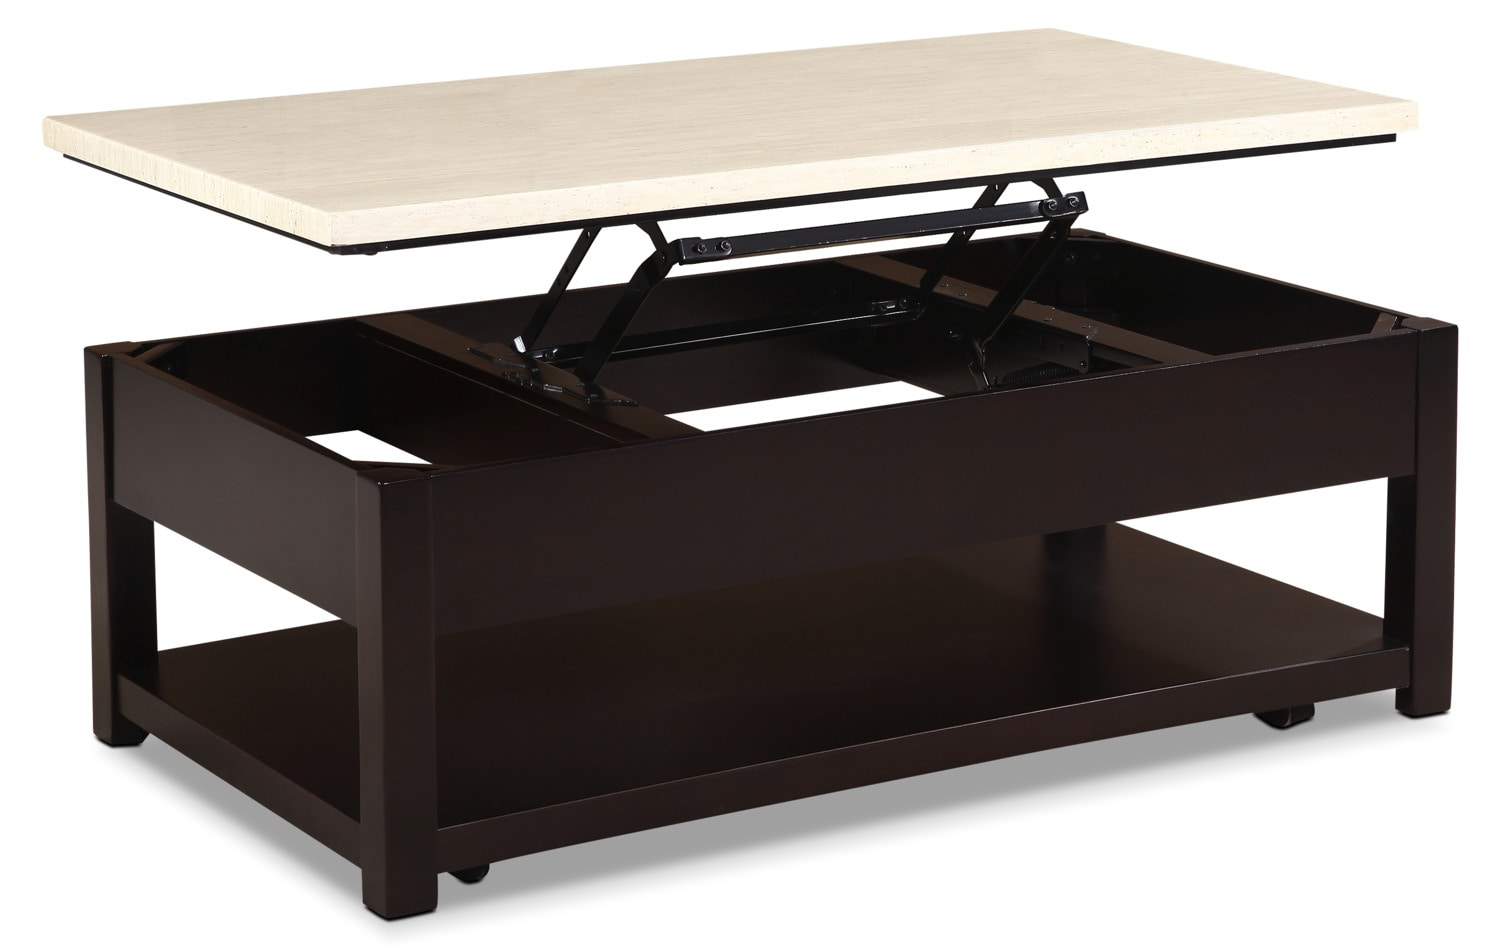 Sicily Coffee Table with Lift-Top and Casters – Beige